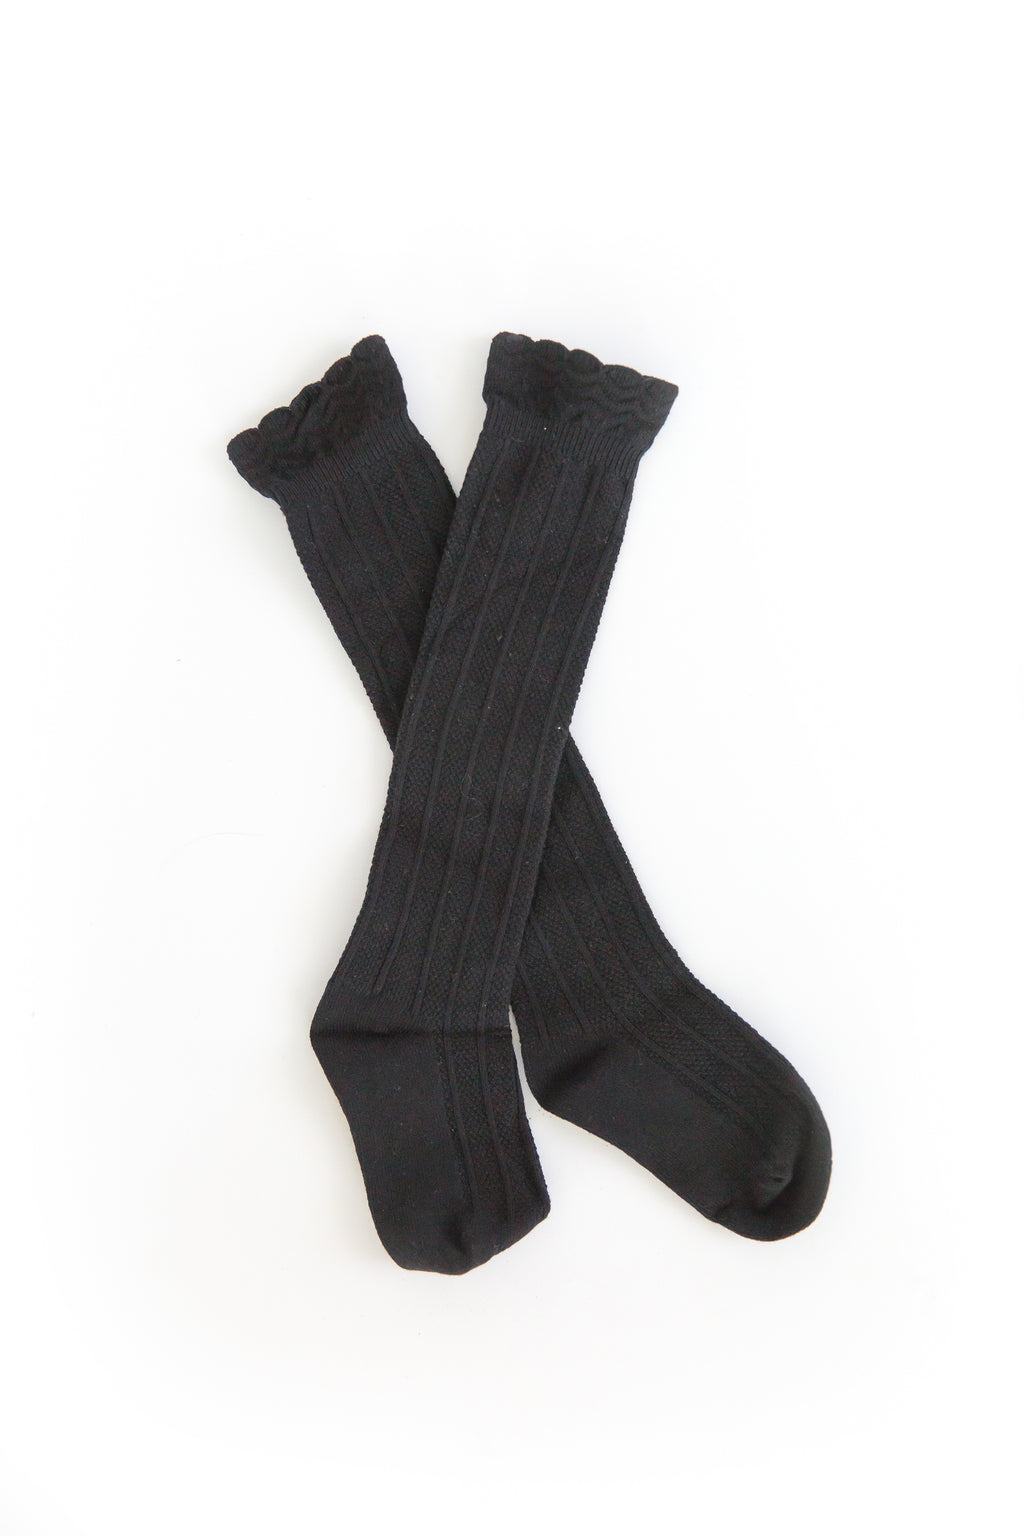 Knee High Socks in Black - Reverie Threads